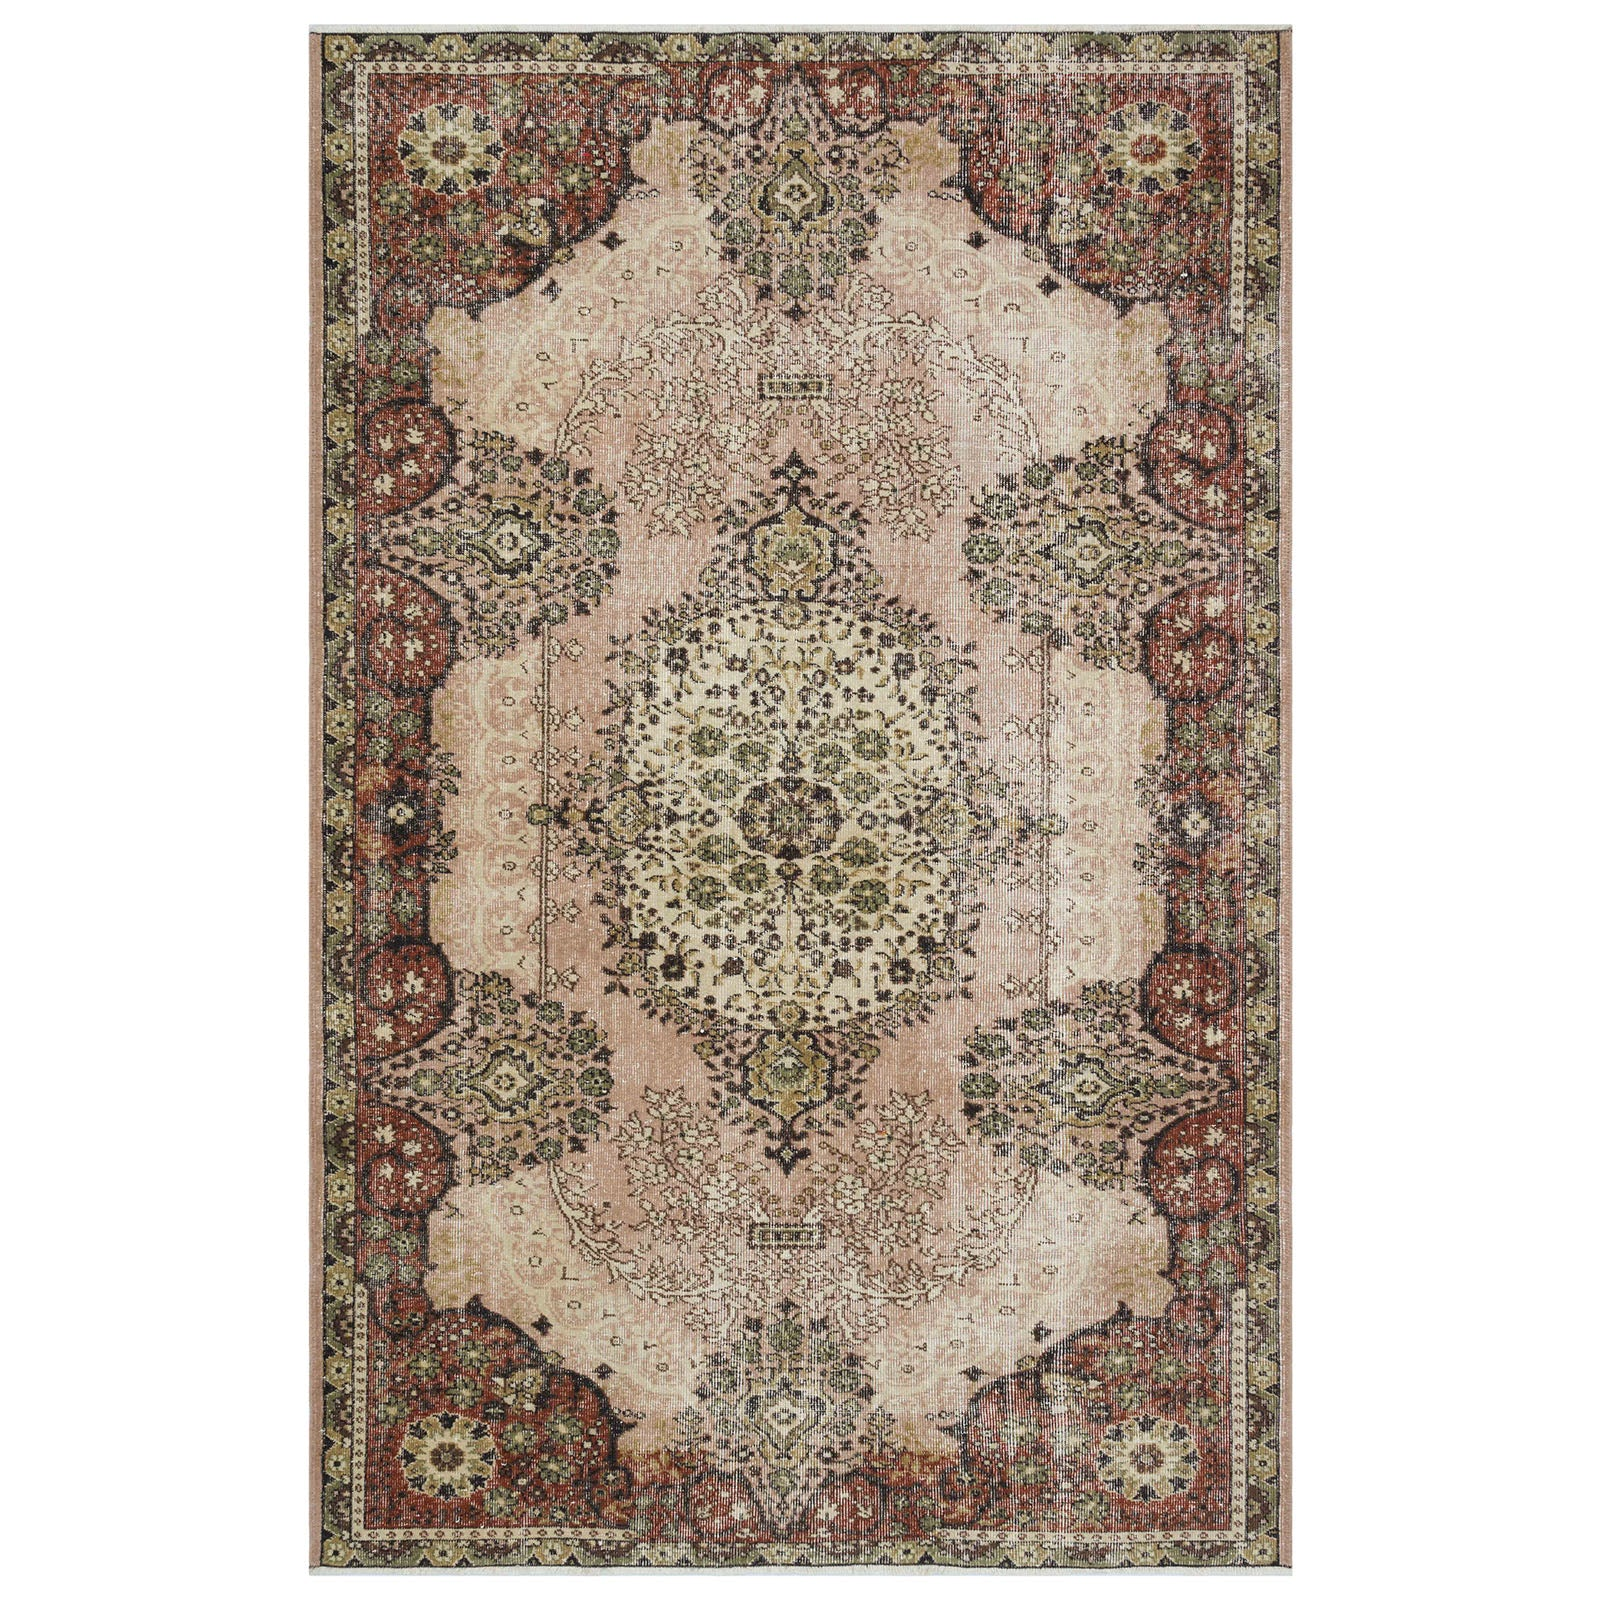 Hali 179X276  CM Bursa Handmade over dyed rug  1776 -  179*276 سجاده بورصة صناعة يدوية على بساط مصبوغ - Shop Online Furniture and Home Decor Store in Dubai, UAE at ebarza